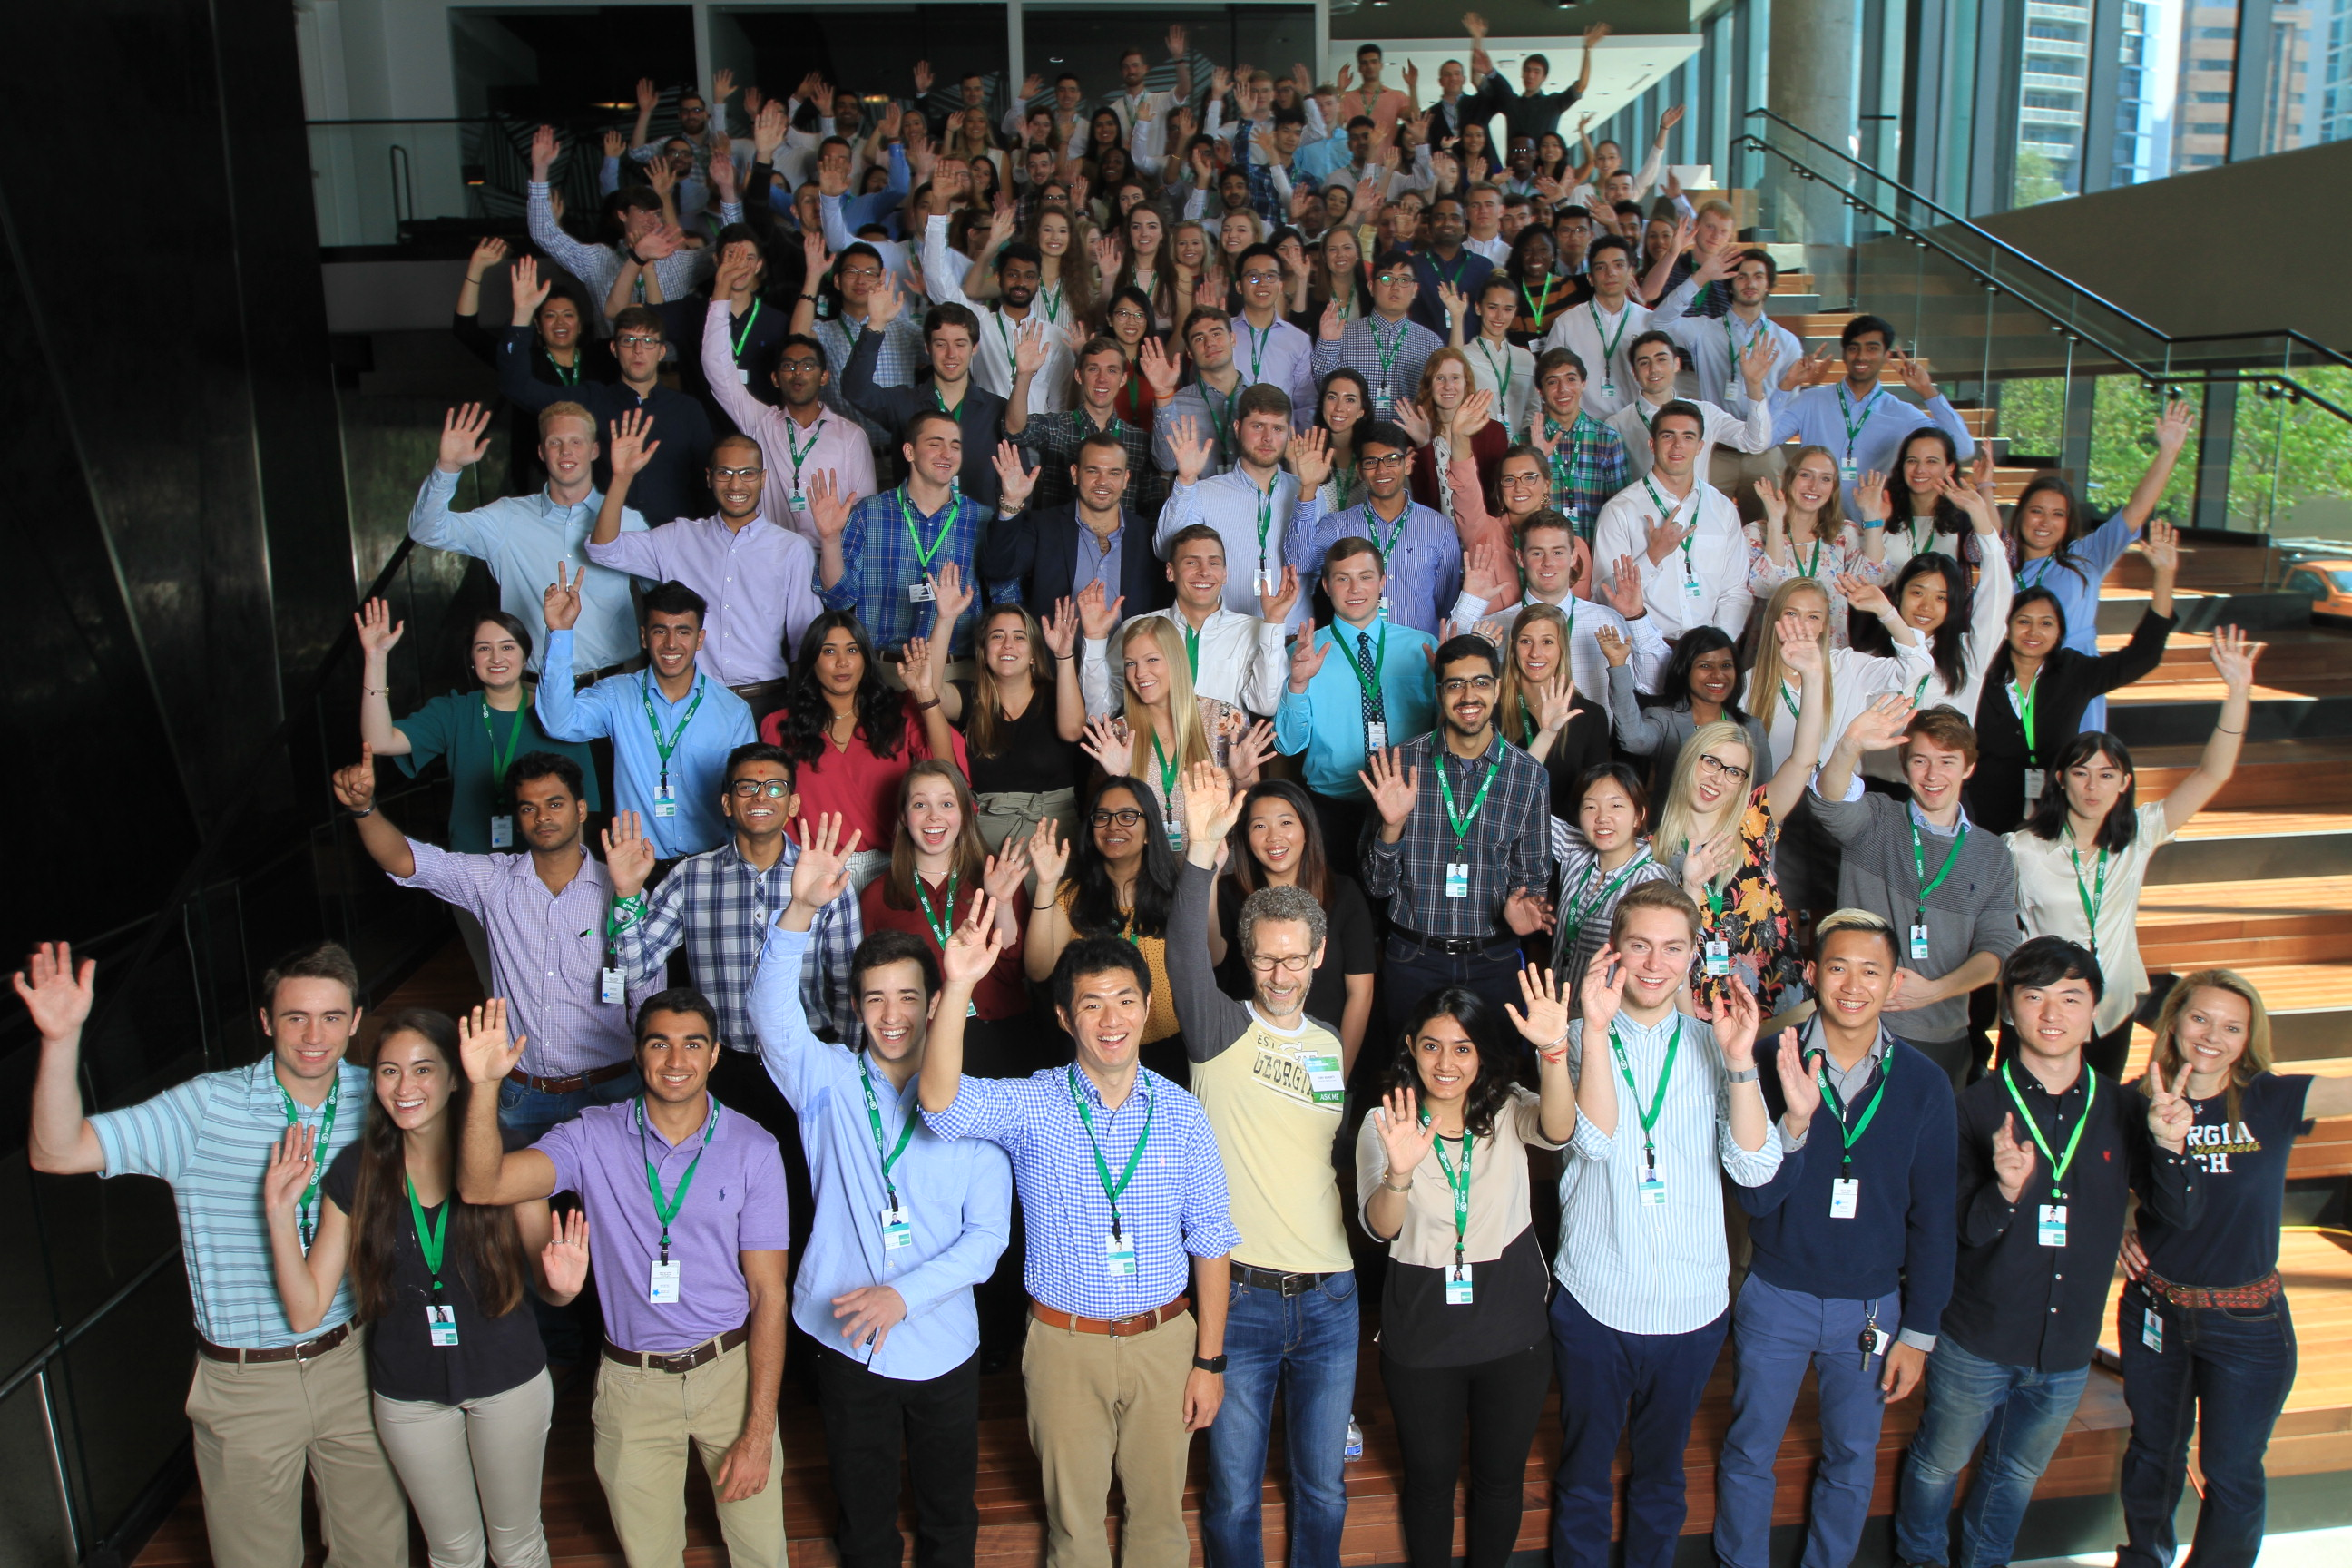 Careers at NCR: Find Jobs and a Career at NCR | NCR